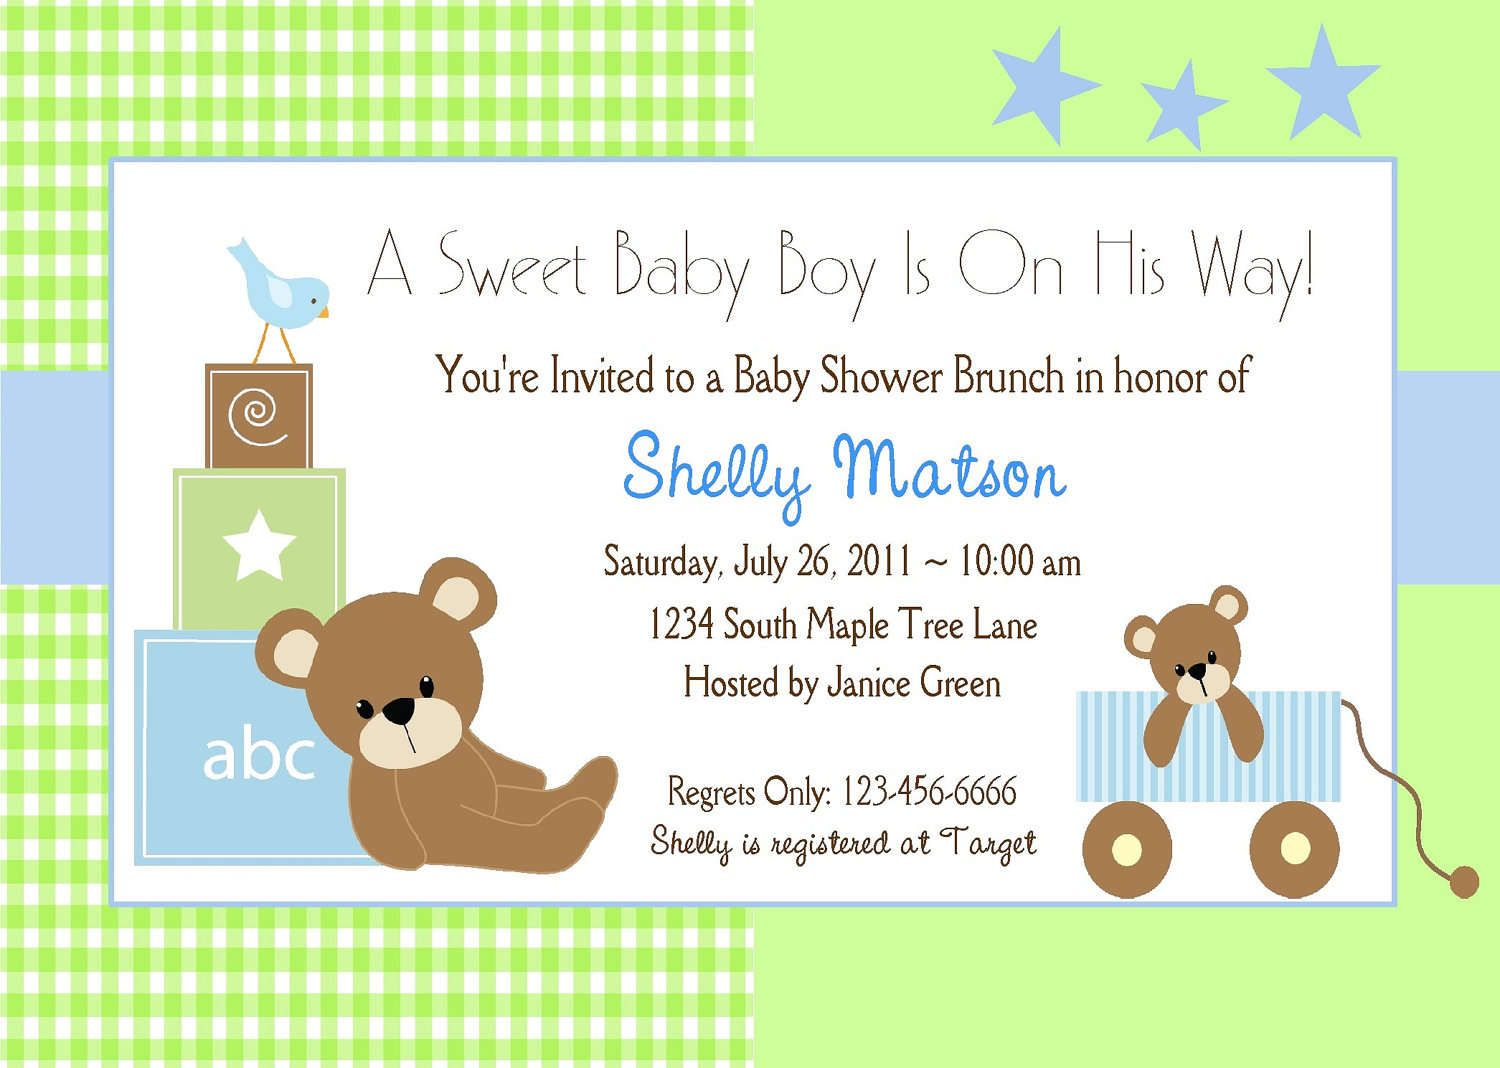 Baby Shower Invitations Free Templates Online Delectable Download Now Free Template It's A Baby Boy Shower Invitations  Baby .